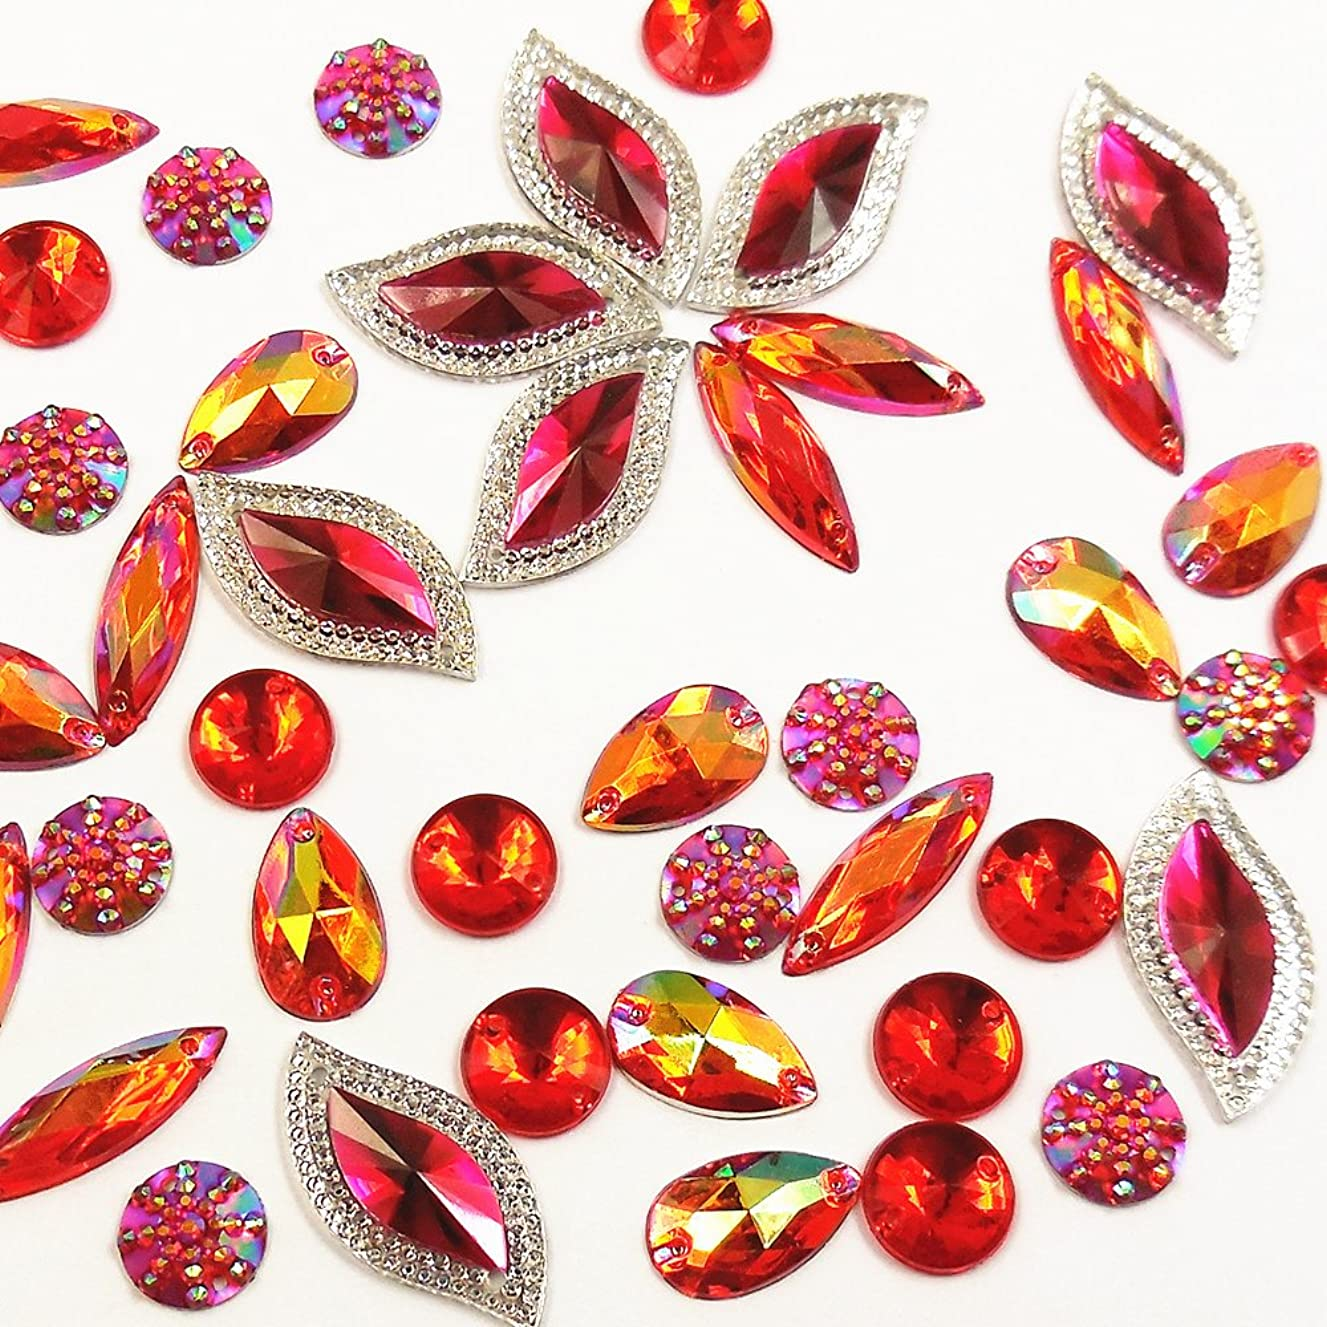 80 Pieces Glitter Red AB Faceted Gems Acrylic Sew On Rhinestones Flatback Crystal for Clothing Dress Decorations